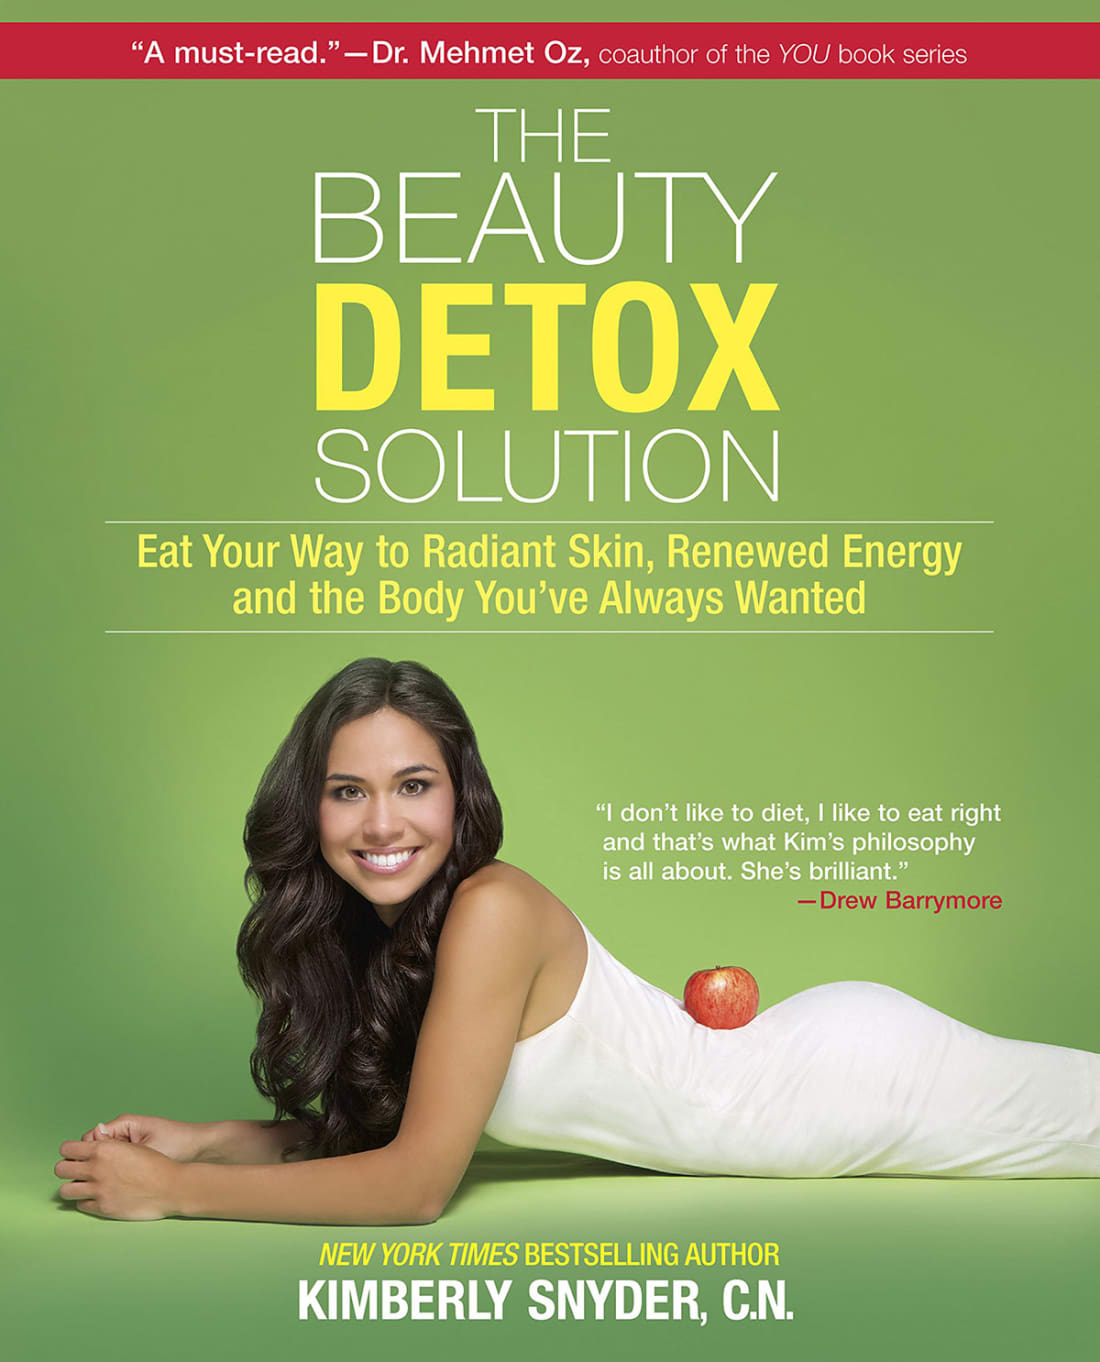 The Beauty Detox Solution by Kimberly Snyder, C.N.